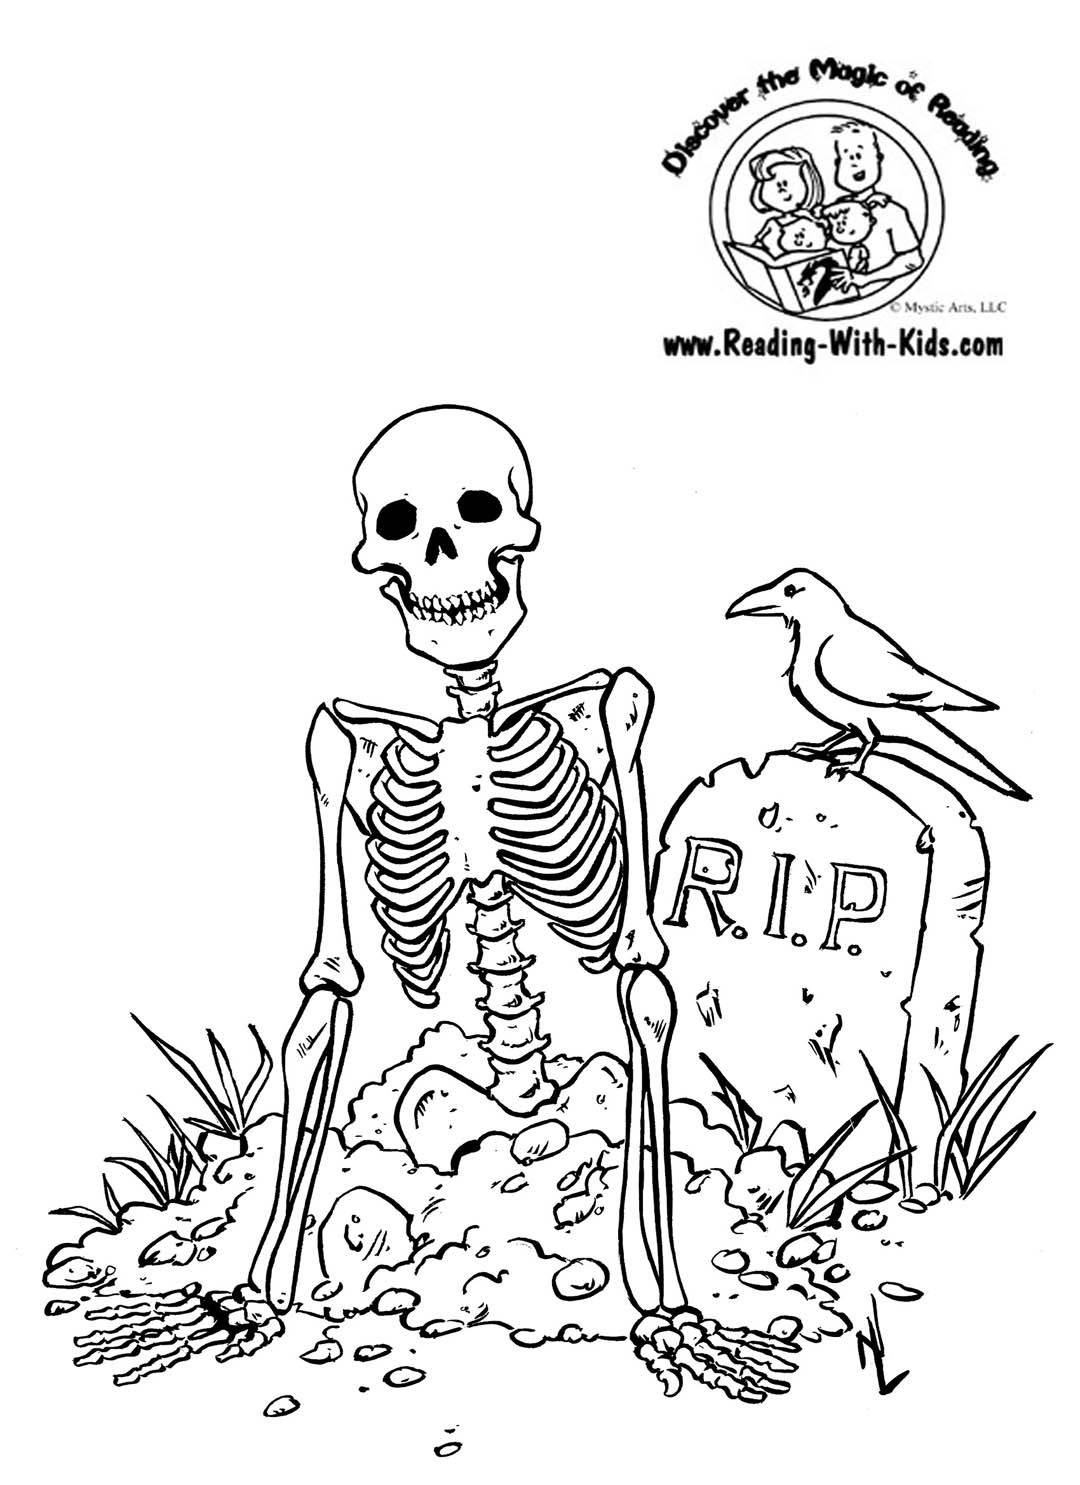 invisible man coloring page skeleton coloring page - Halloween Skeleton Coloring Pages